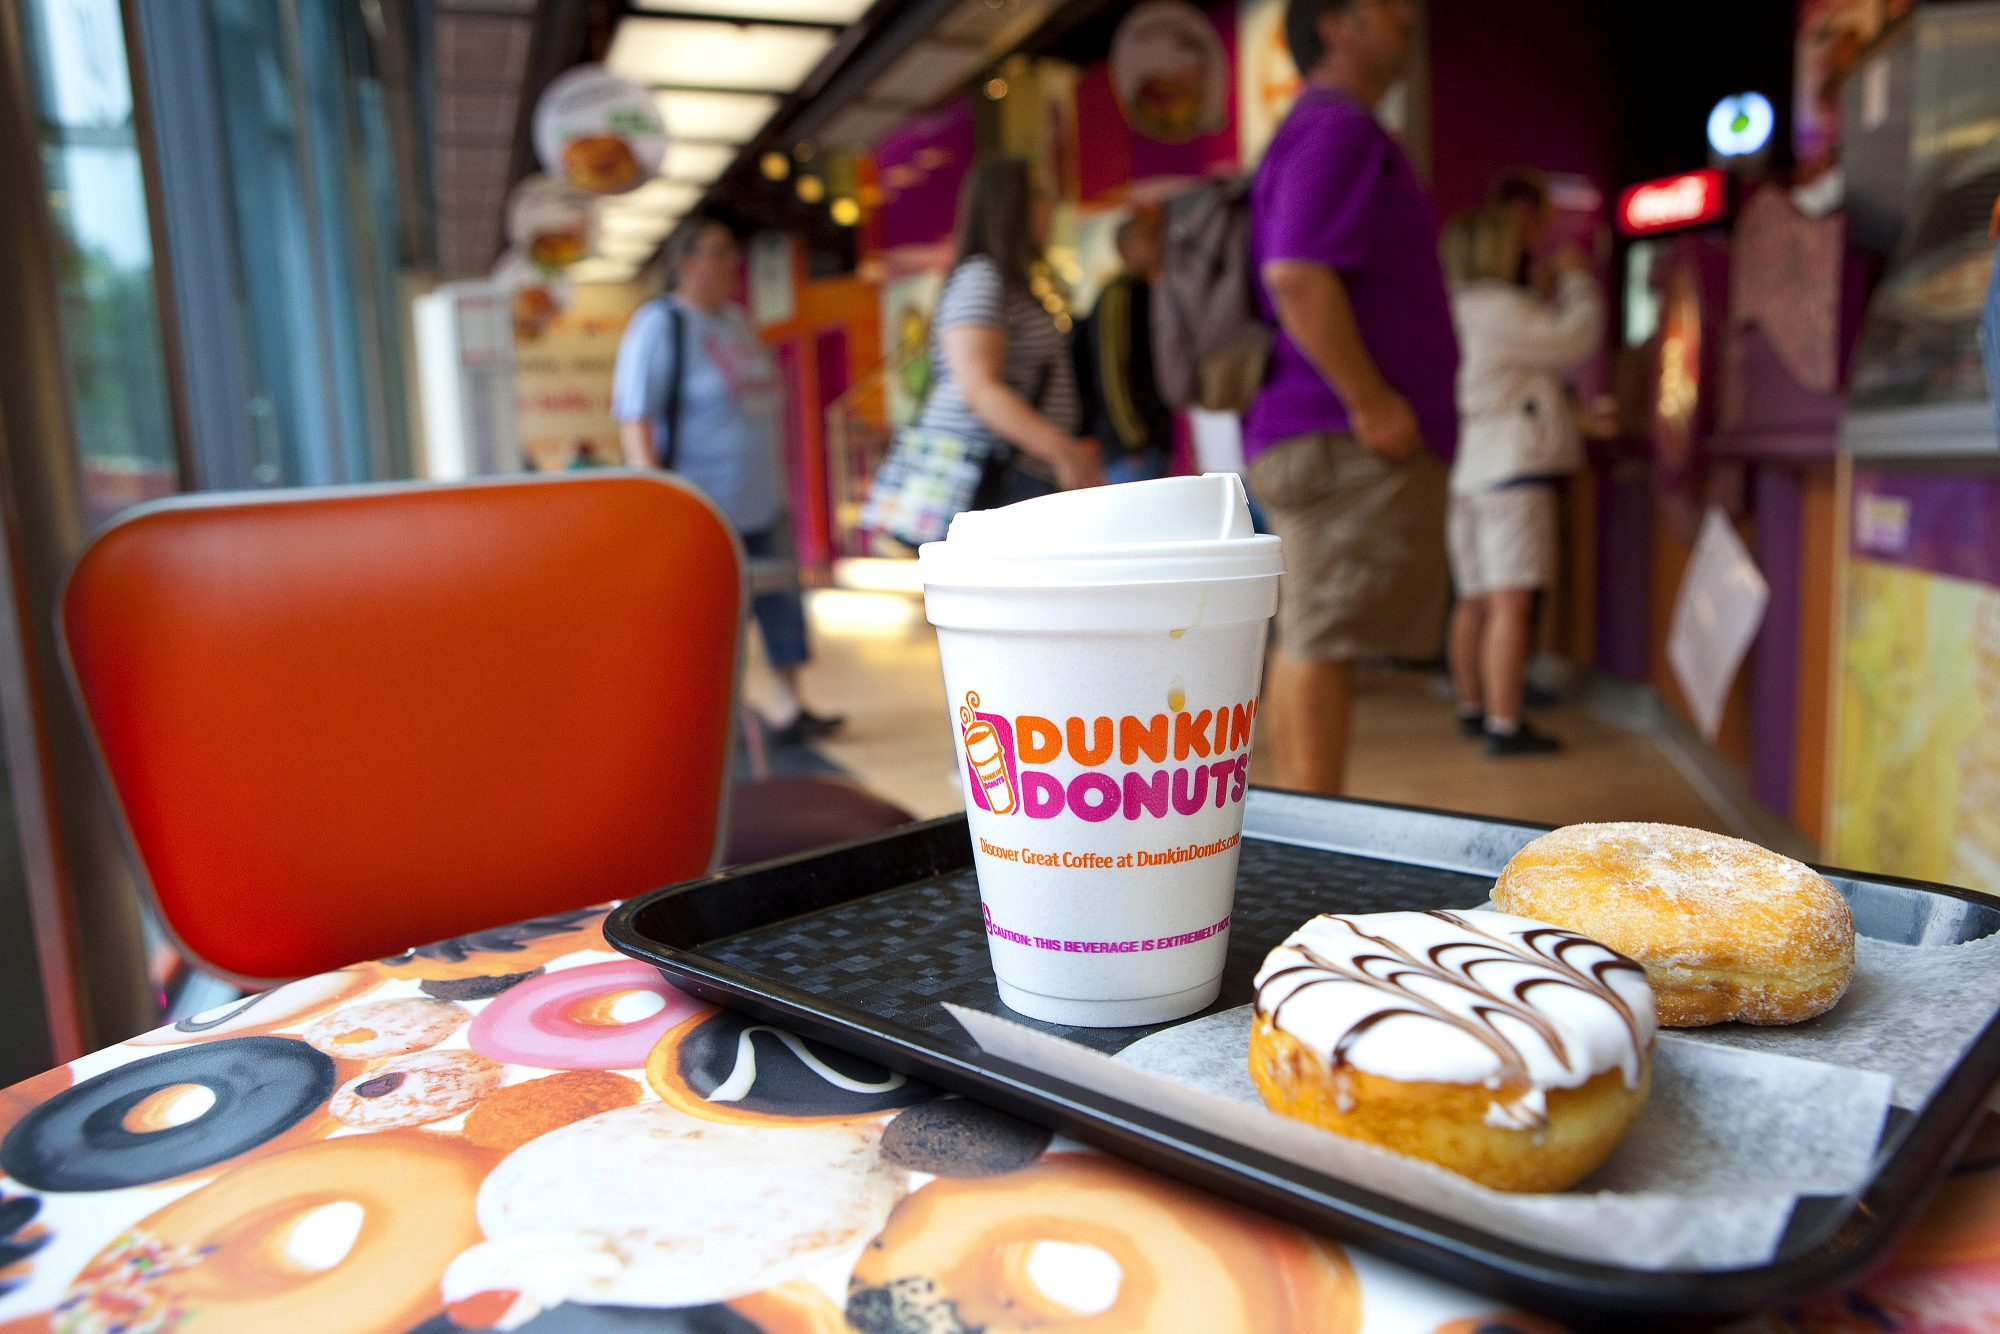 Inside A Dunkin' Donuts Store As Group Plans German Expansion